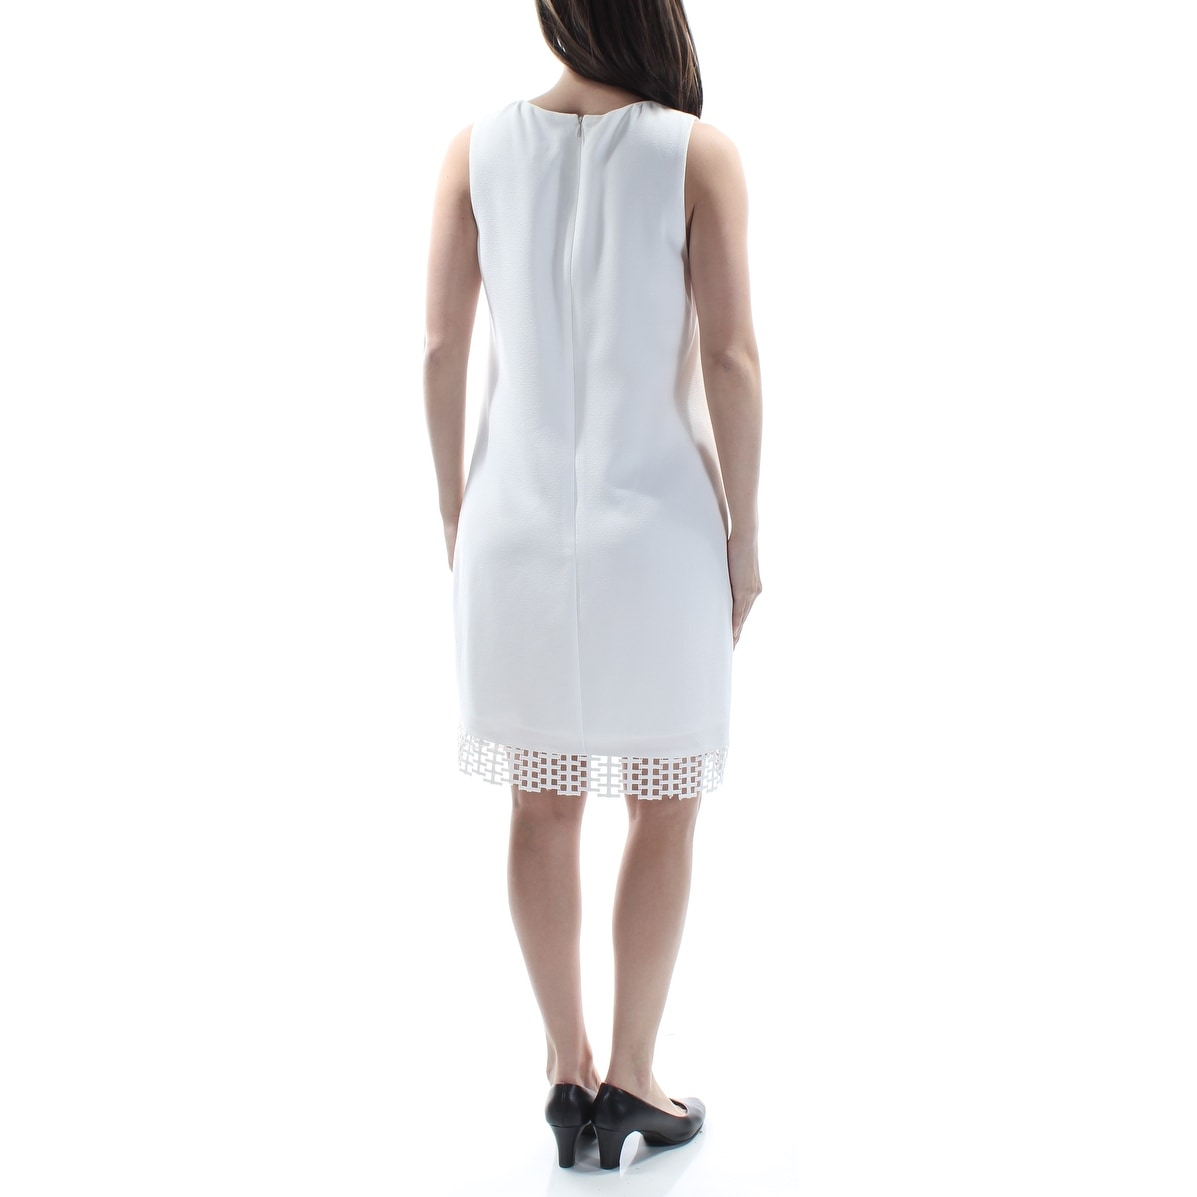 92f0d0ba75c Shop BETSEY JOHNSON Womens White Cut Out V Neck Above The Knee Shift Dress  Size  4X - Free Shipping Today - Overstock - 21368390